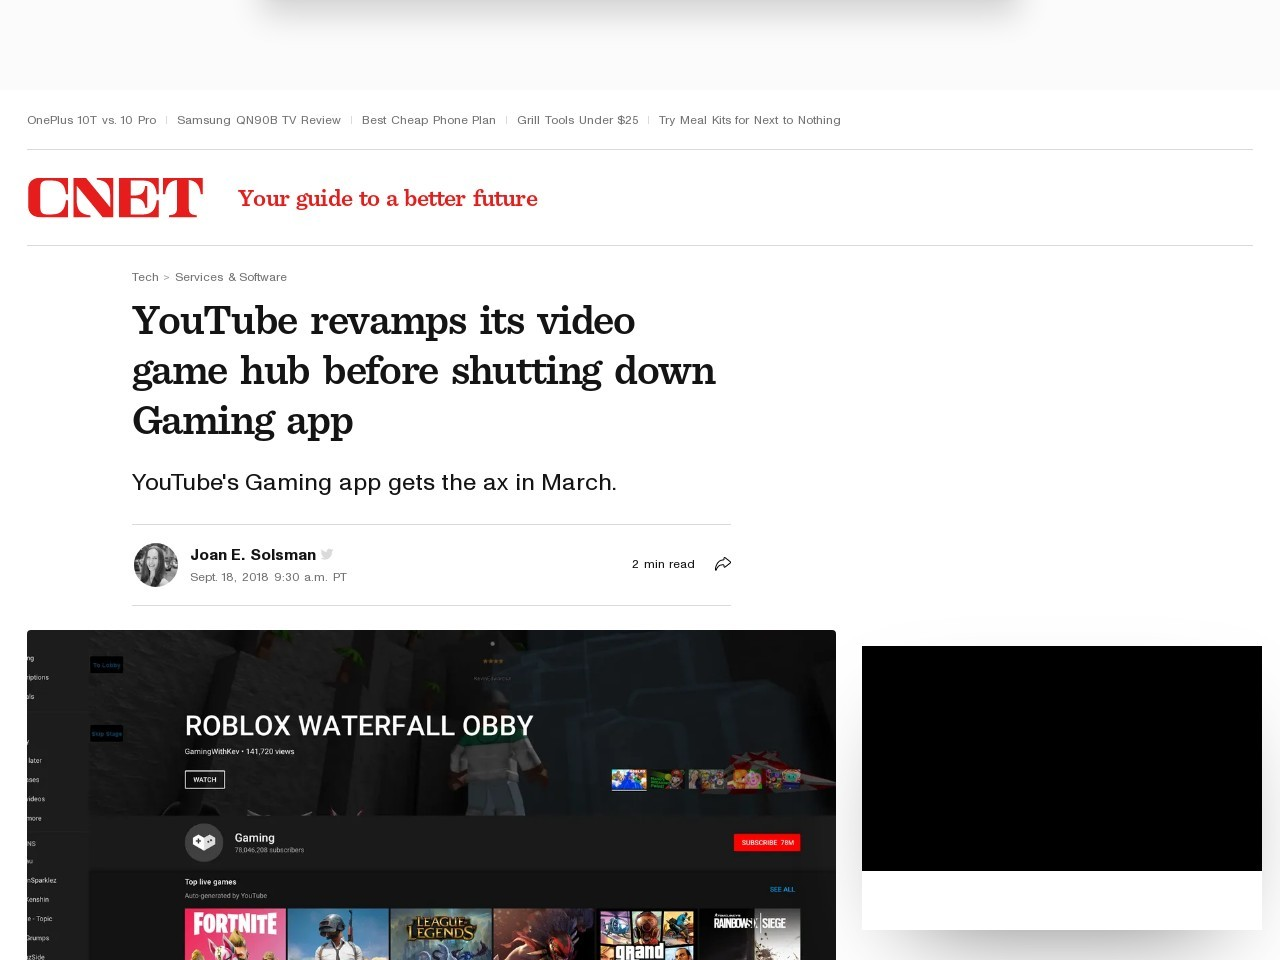 YouTube revamps its gaming homebase ahead of shutting down its Gaming app     – CNET